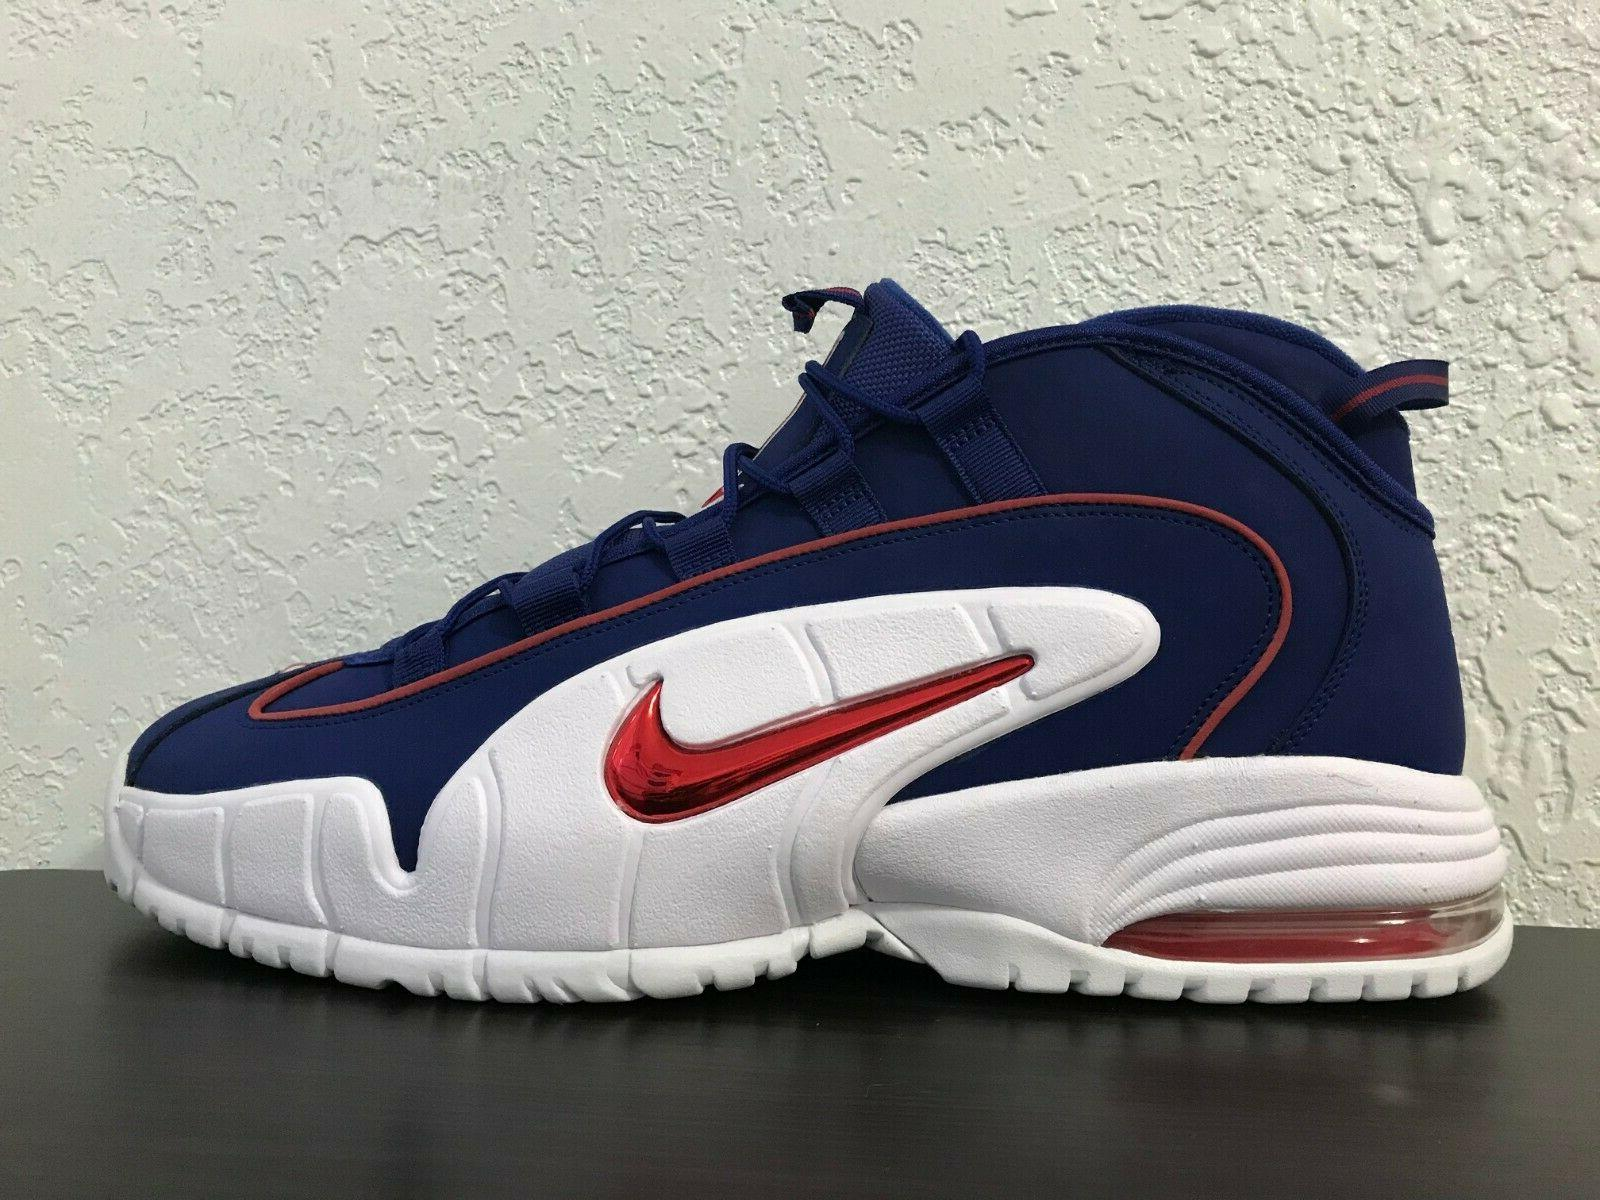 Nike Air Max Penny 1 Size 15 Lil Penny Basketball Sneakers